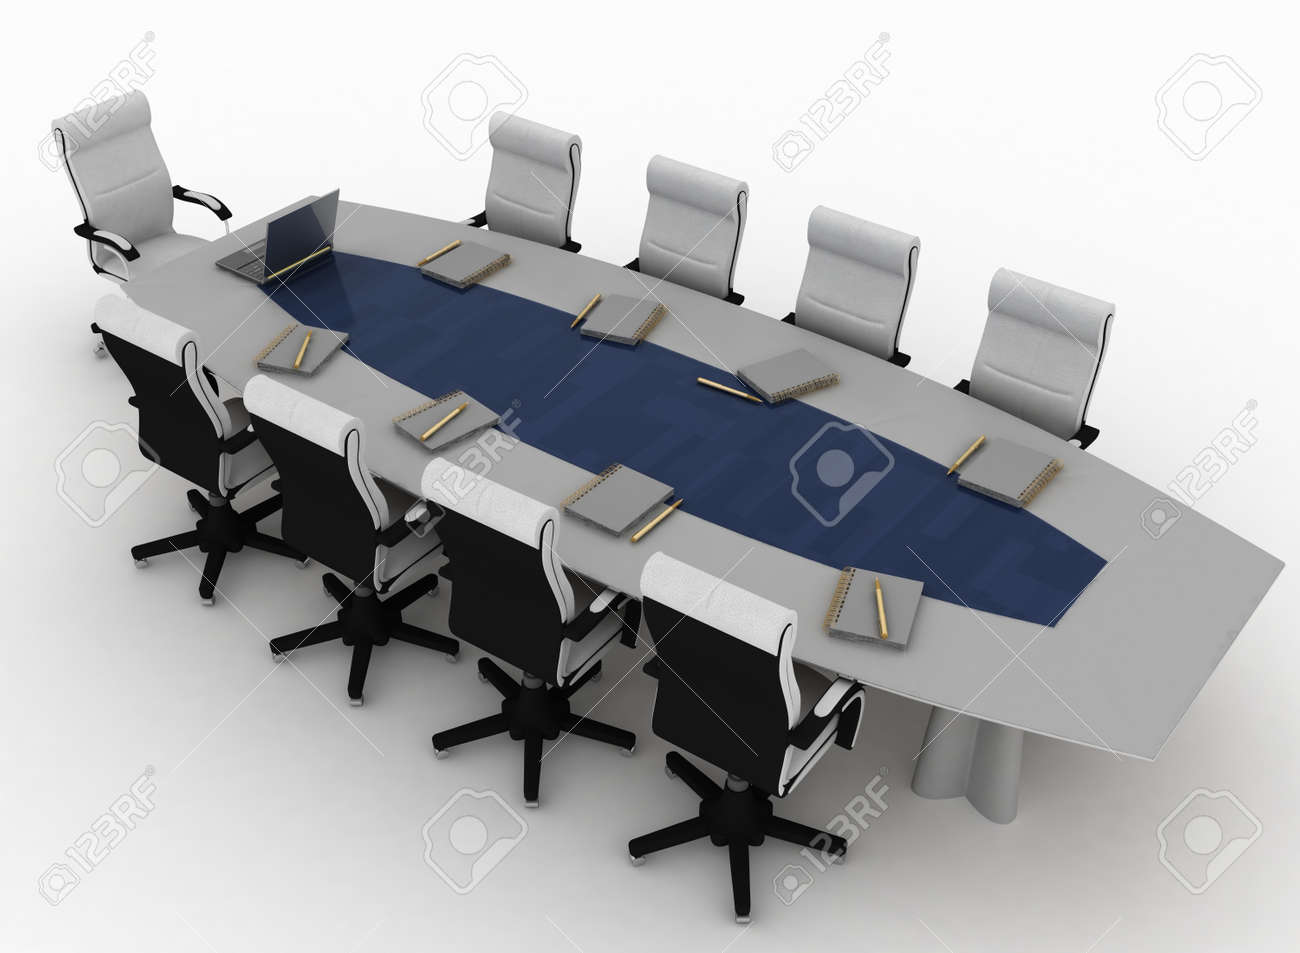 conference table with empty chairs for modern office stock photo  - conference table with empty chairs for modern office stock photo